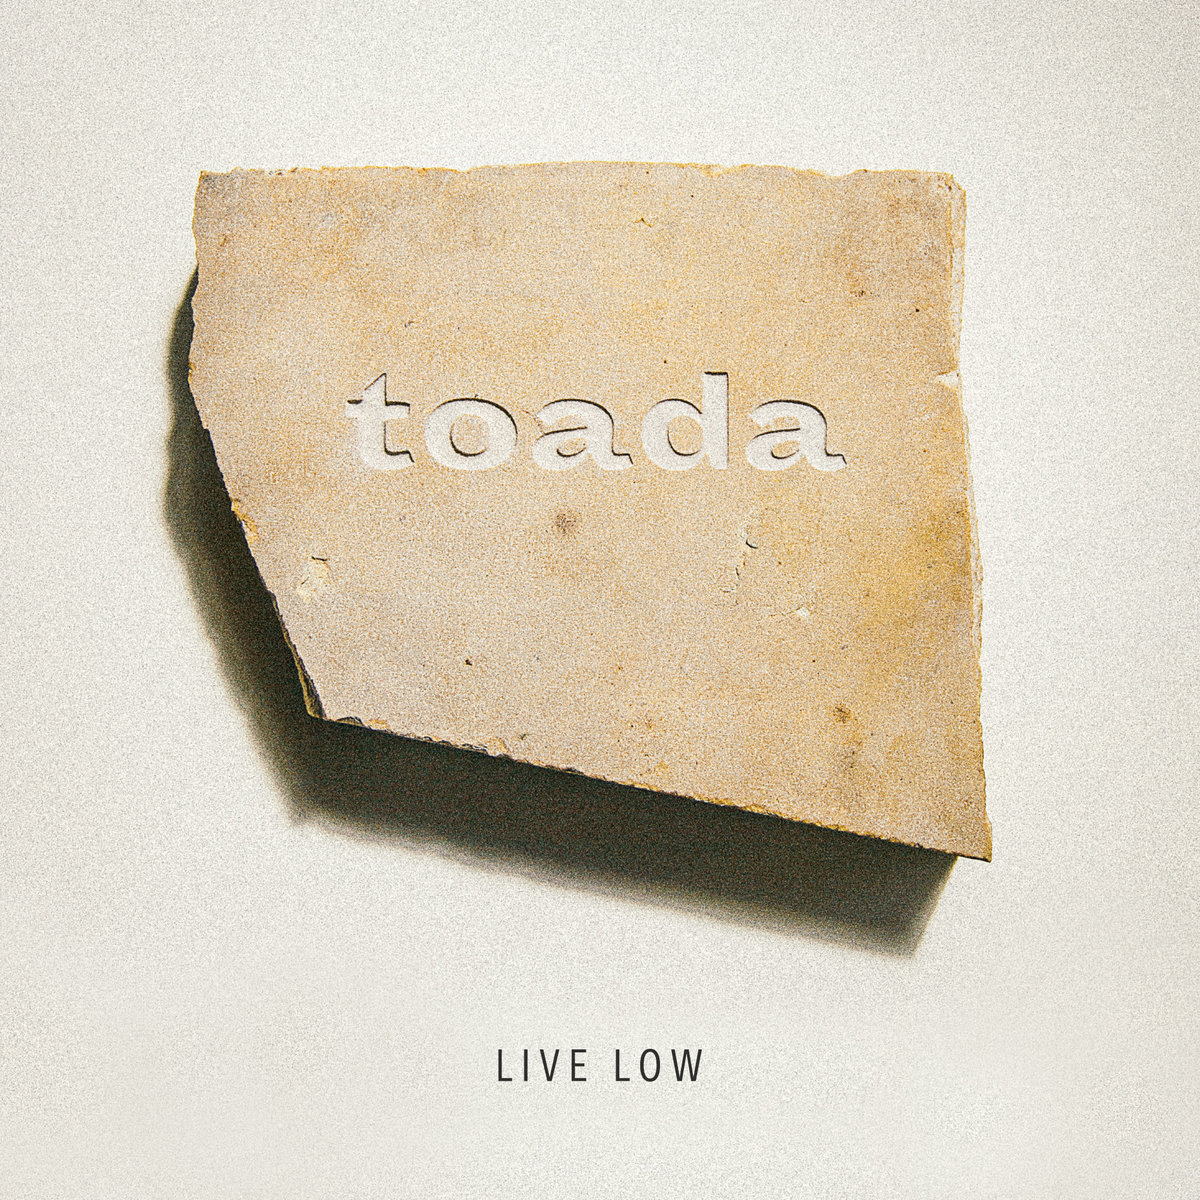 Live Low – Toada